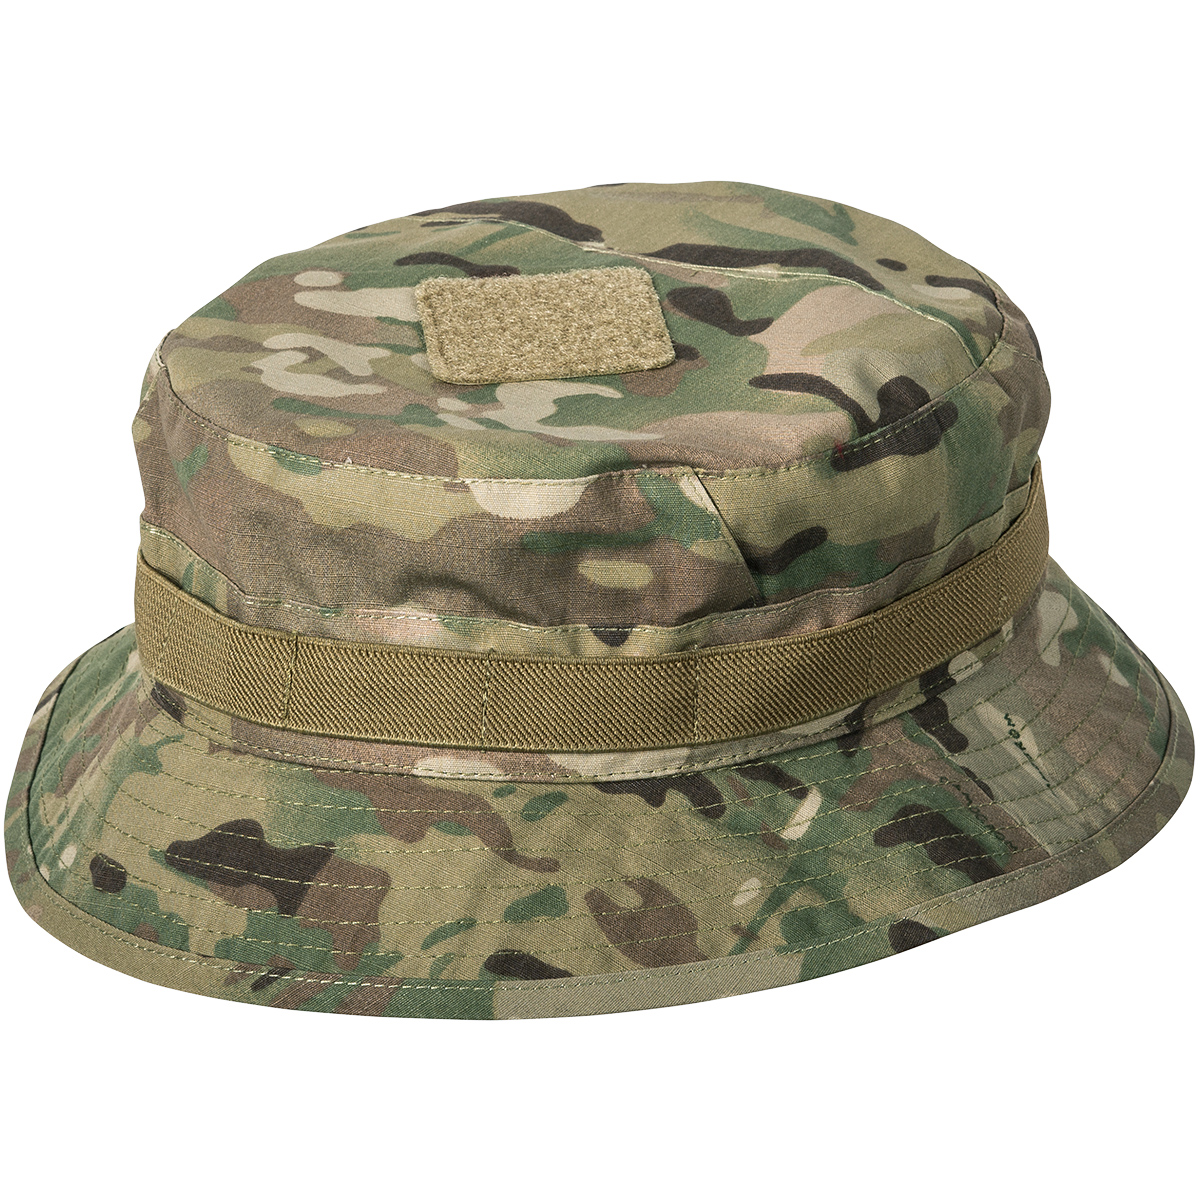 Details about Helikon Tactical Military Cpu Boonie Hat Hunting Ripstop Sun  Cap Camogrom Camo 9e74918fb1a